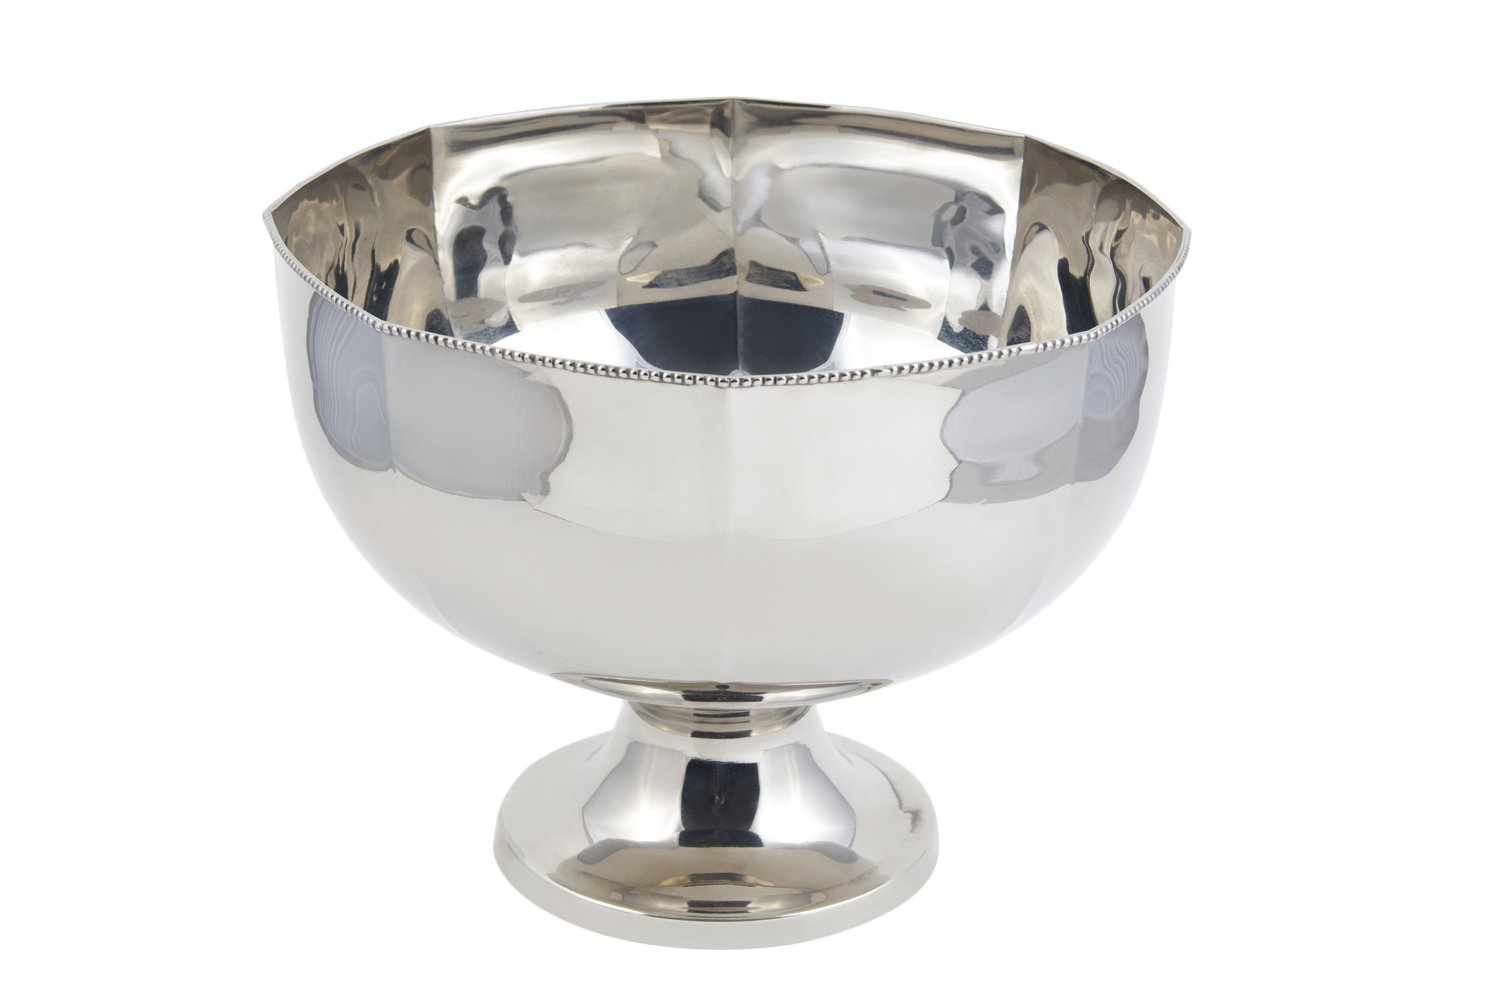 Bon Chef 61322 Stainless Steel Hollowware Punch Bowl with Pedestal Base, 14'' Diameter by Bon Chef